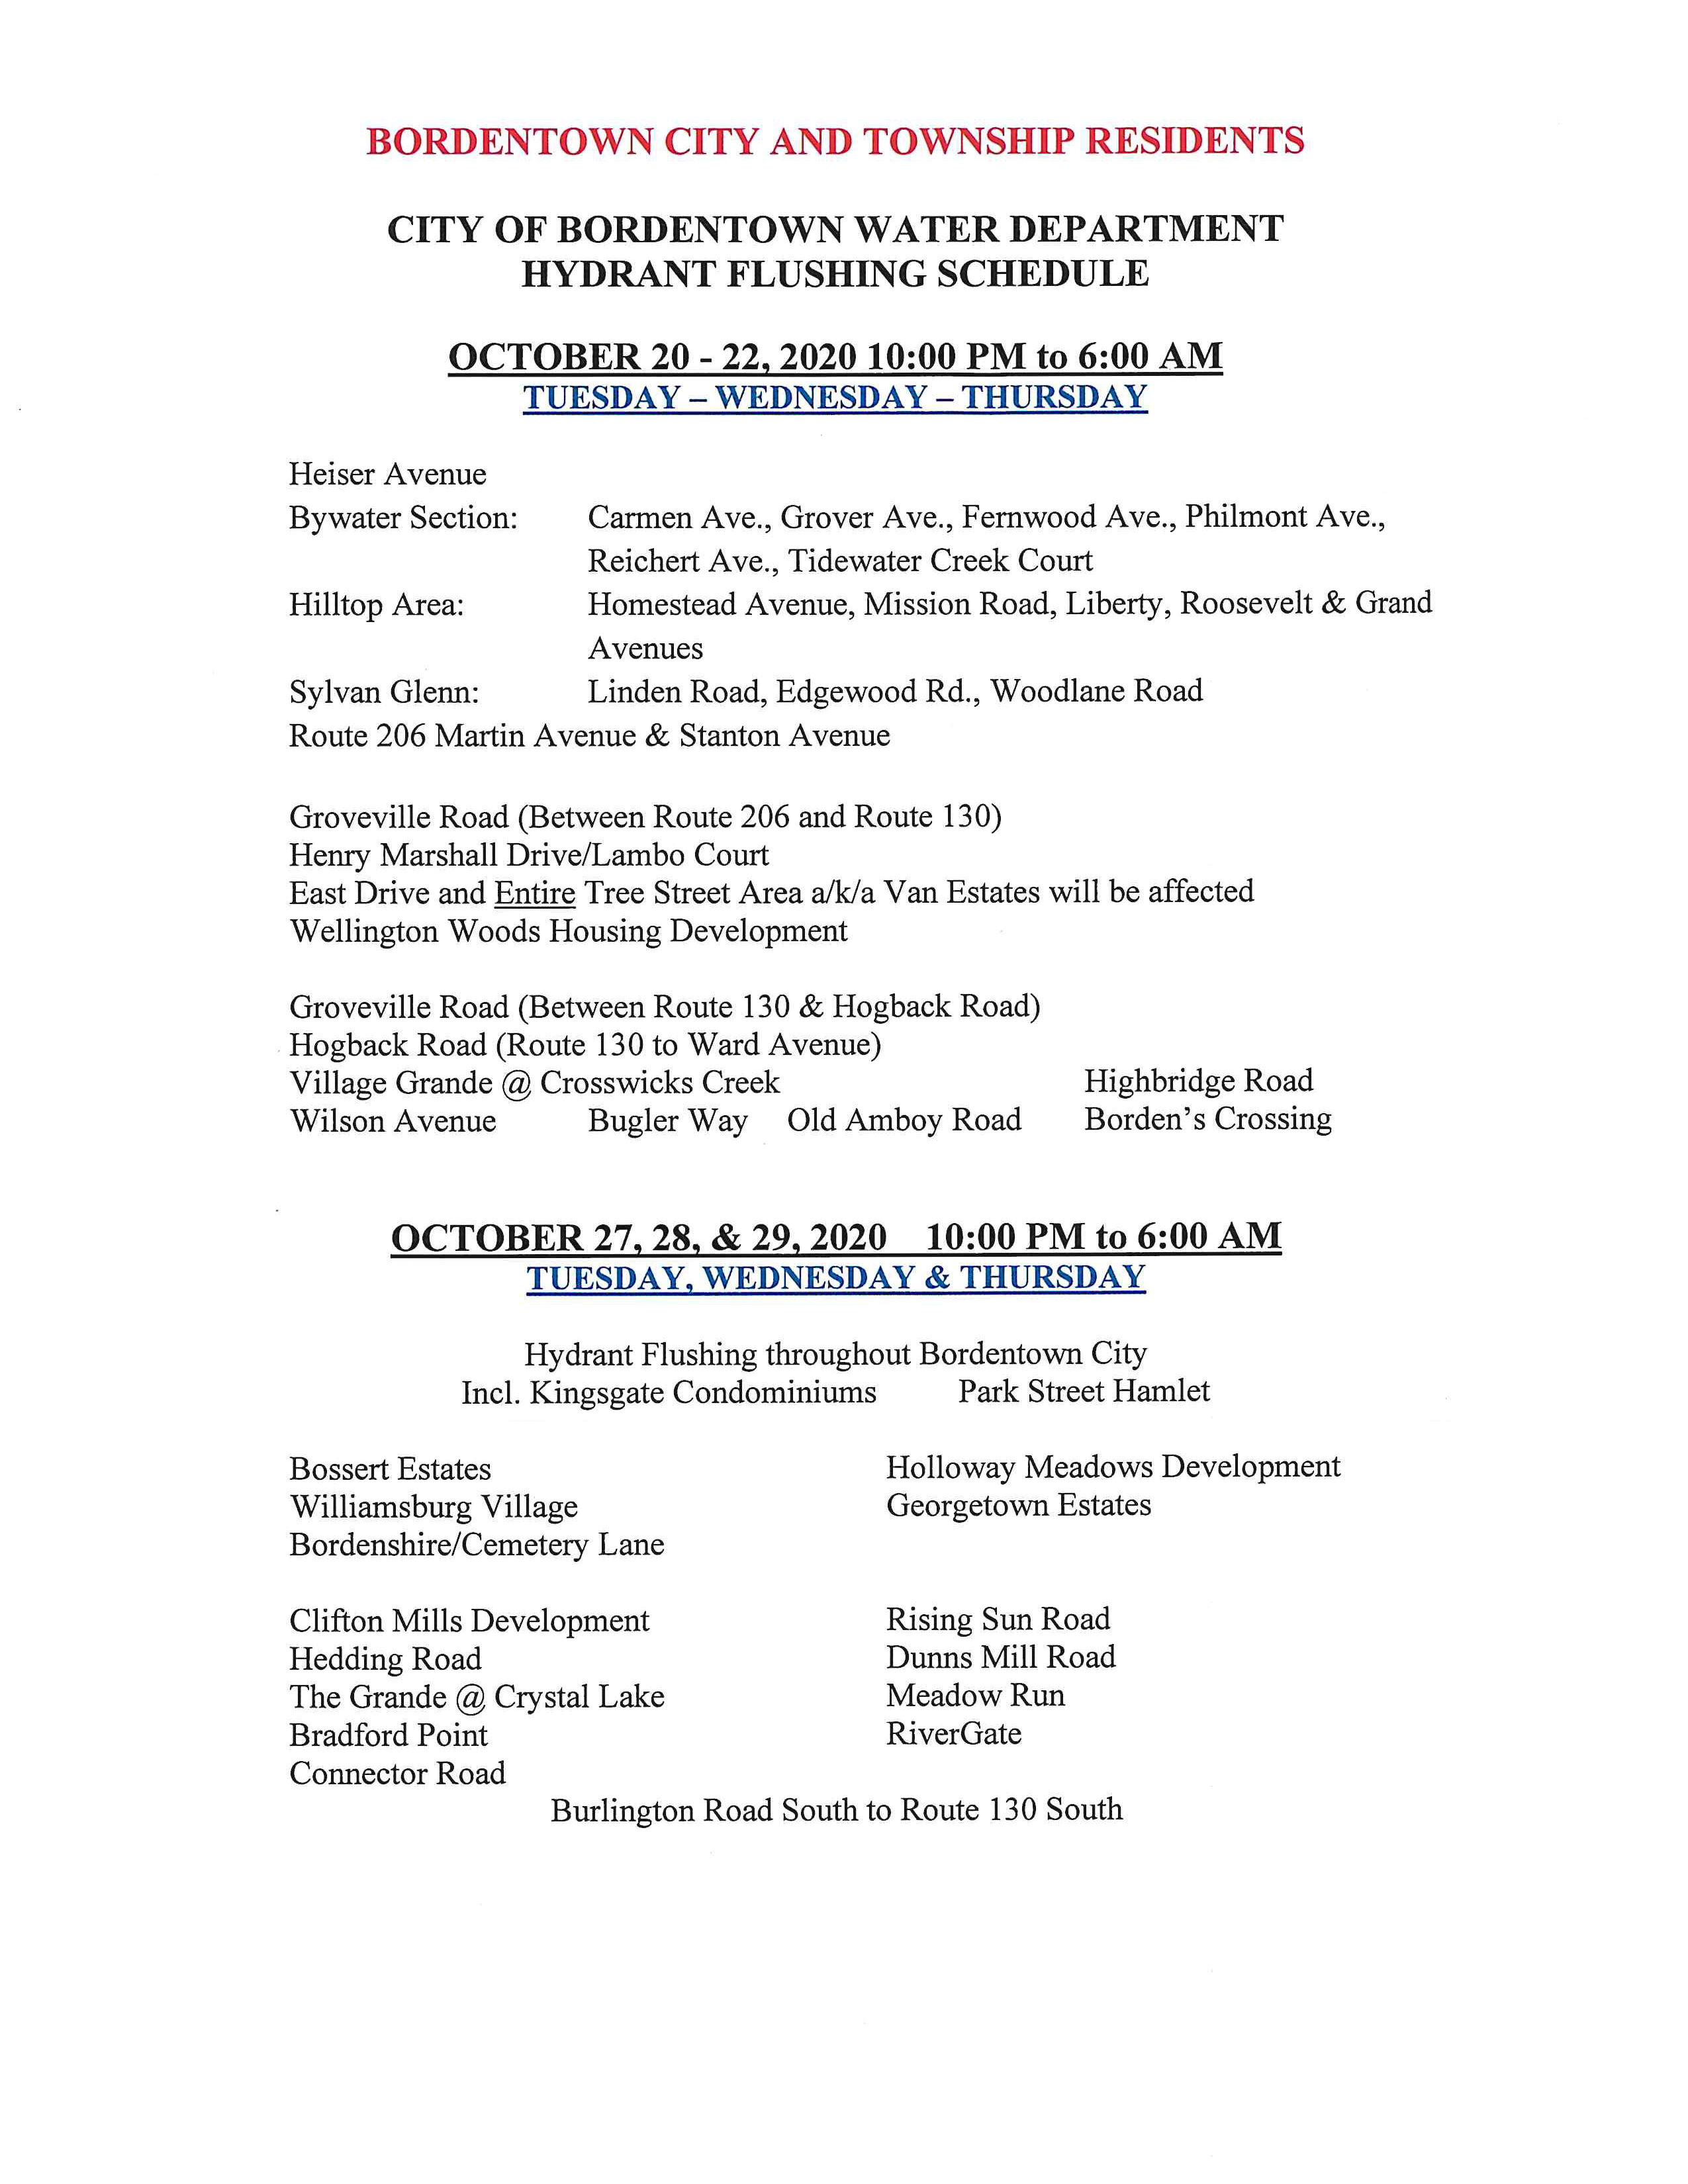 2020 Hydrant Flushing Schedule